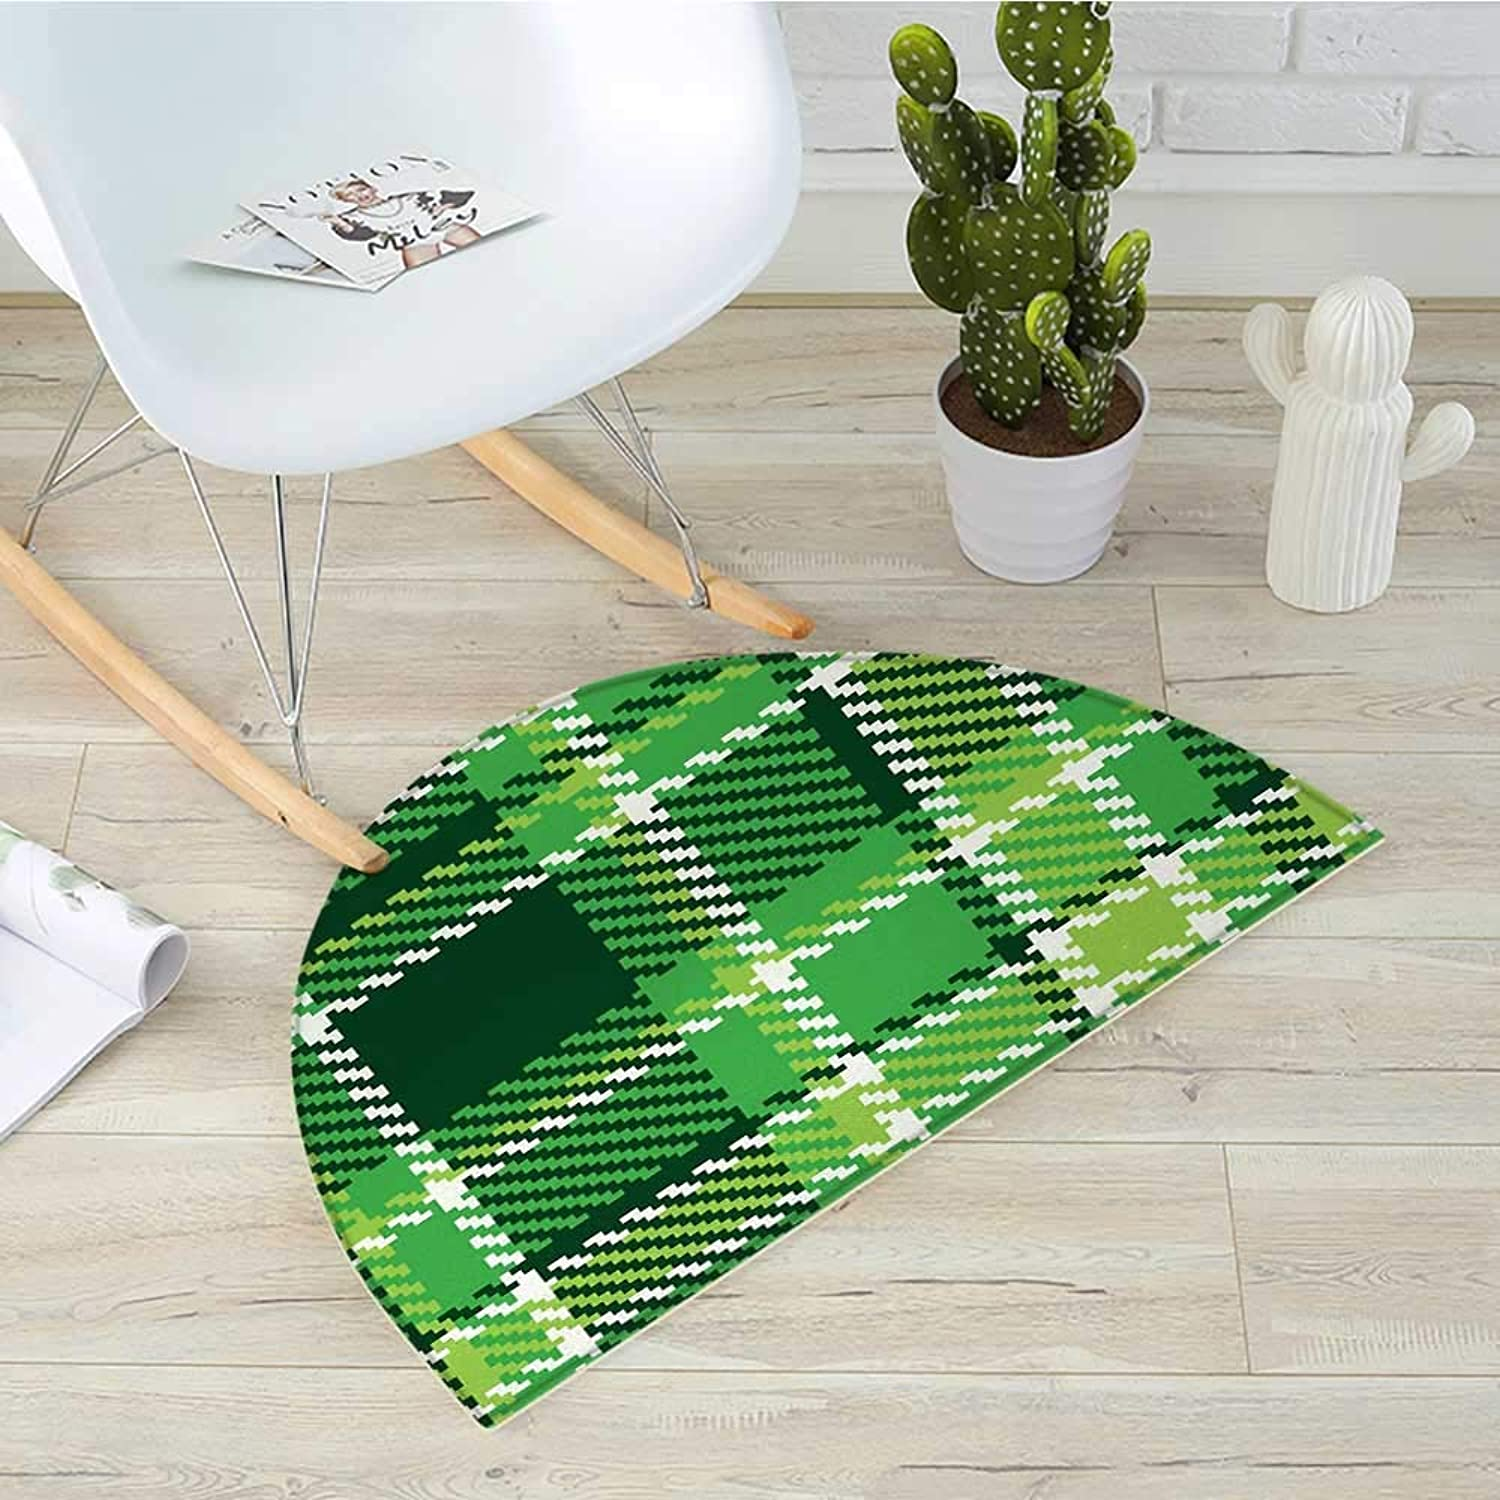 Checkered Semicircle Doormat Old Fashioned Irish British Tile Mosaic in Vibrant Green colors Halfmoon doormats H 27.5  xD 41.3  Emerald Lime Green White